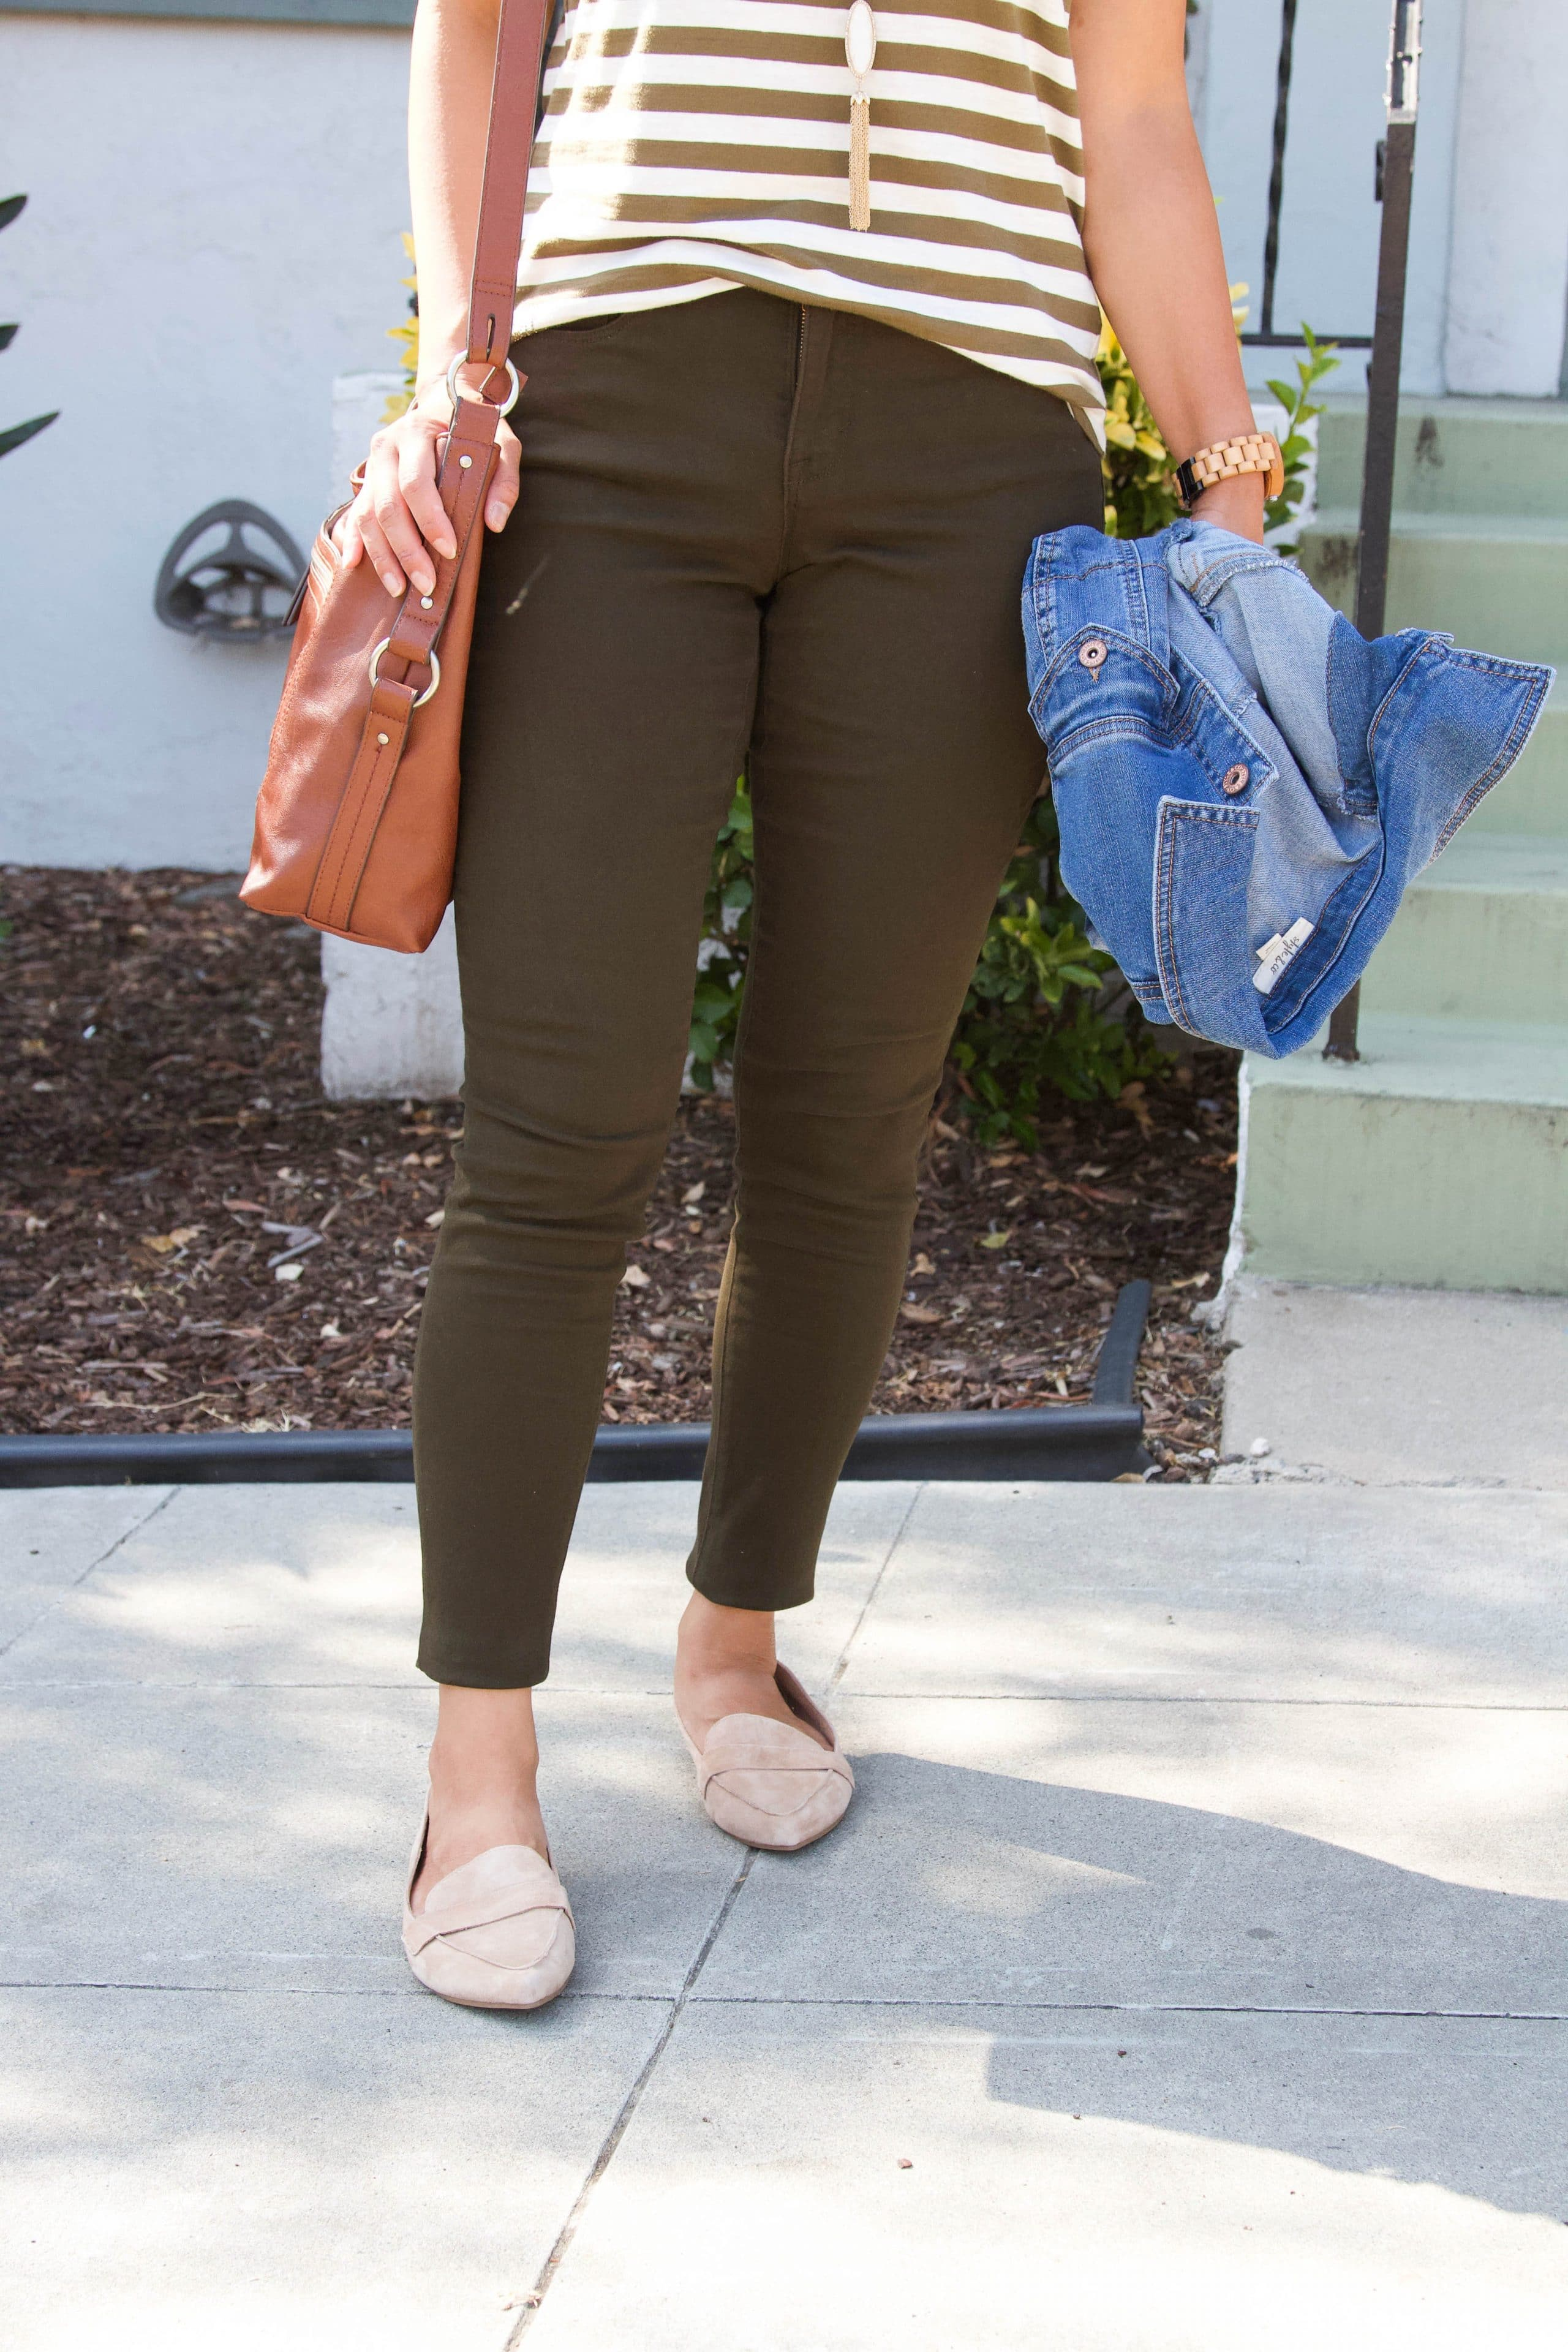 tan loafers + brown and white striped tee + brown pants + denim jacket + cognac purse